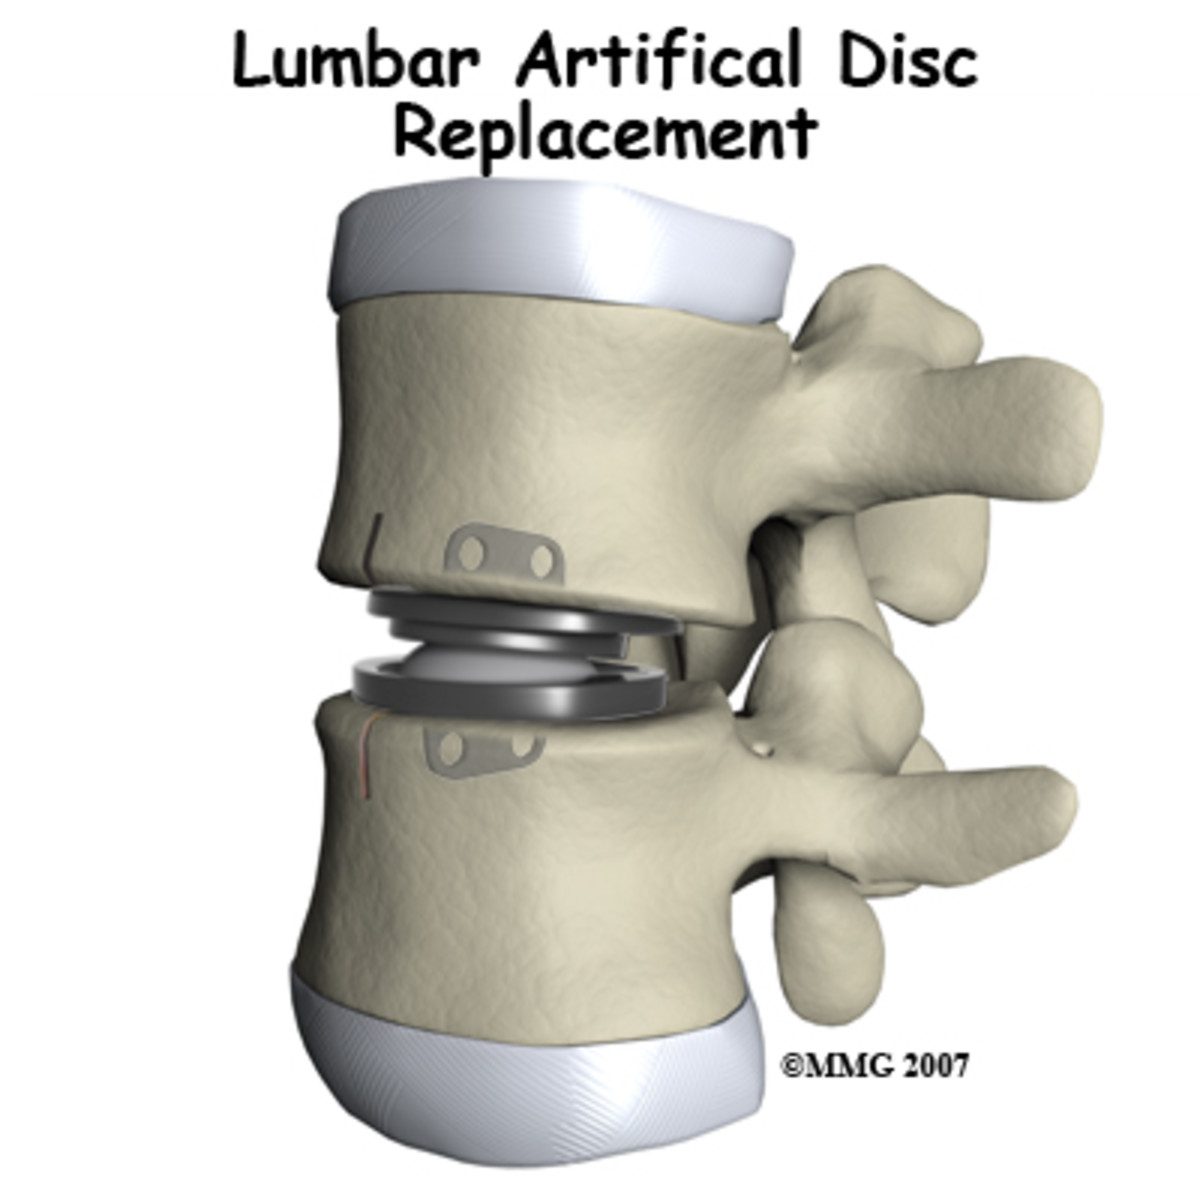 How an artificial lumbar disc replacement procedure is done?